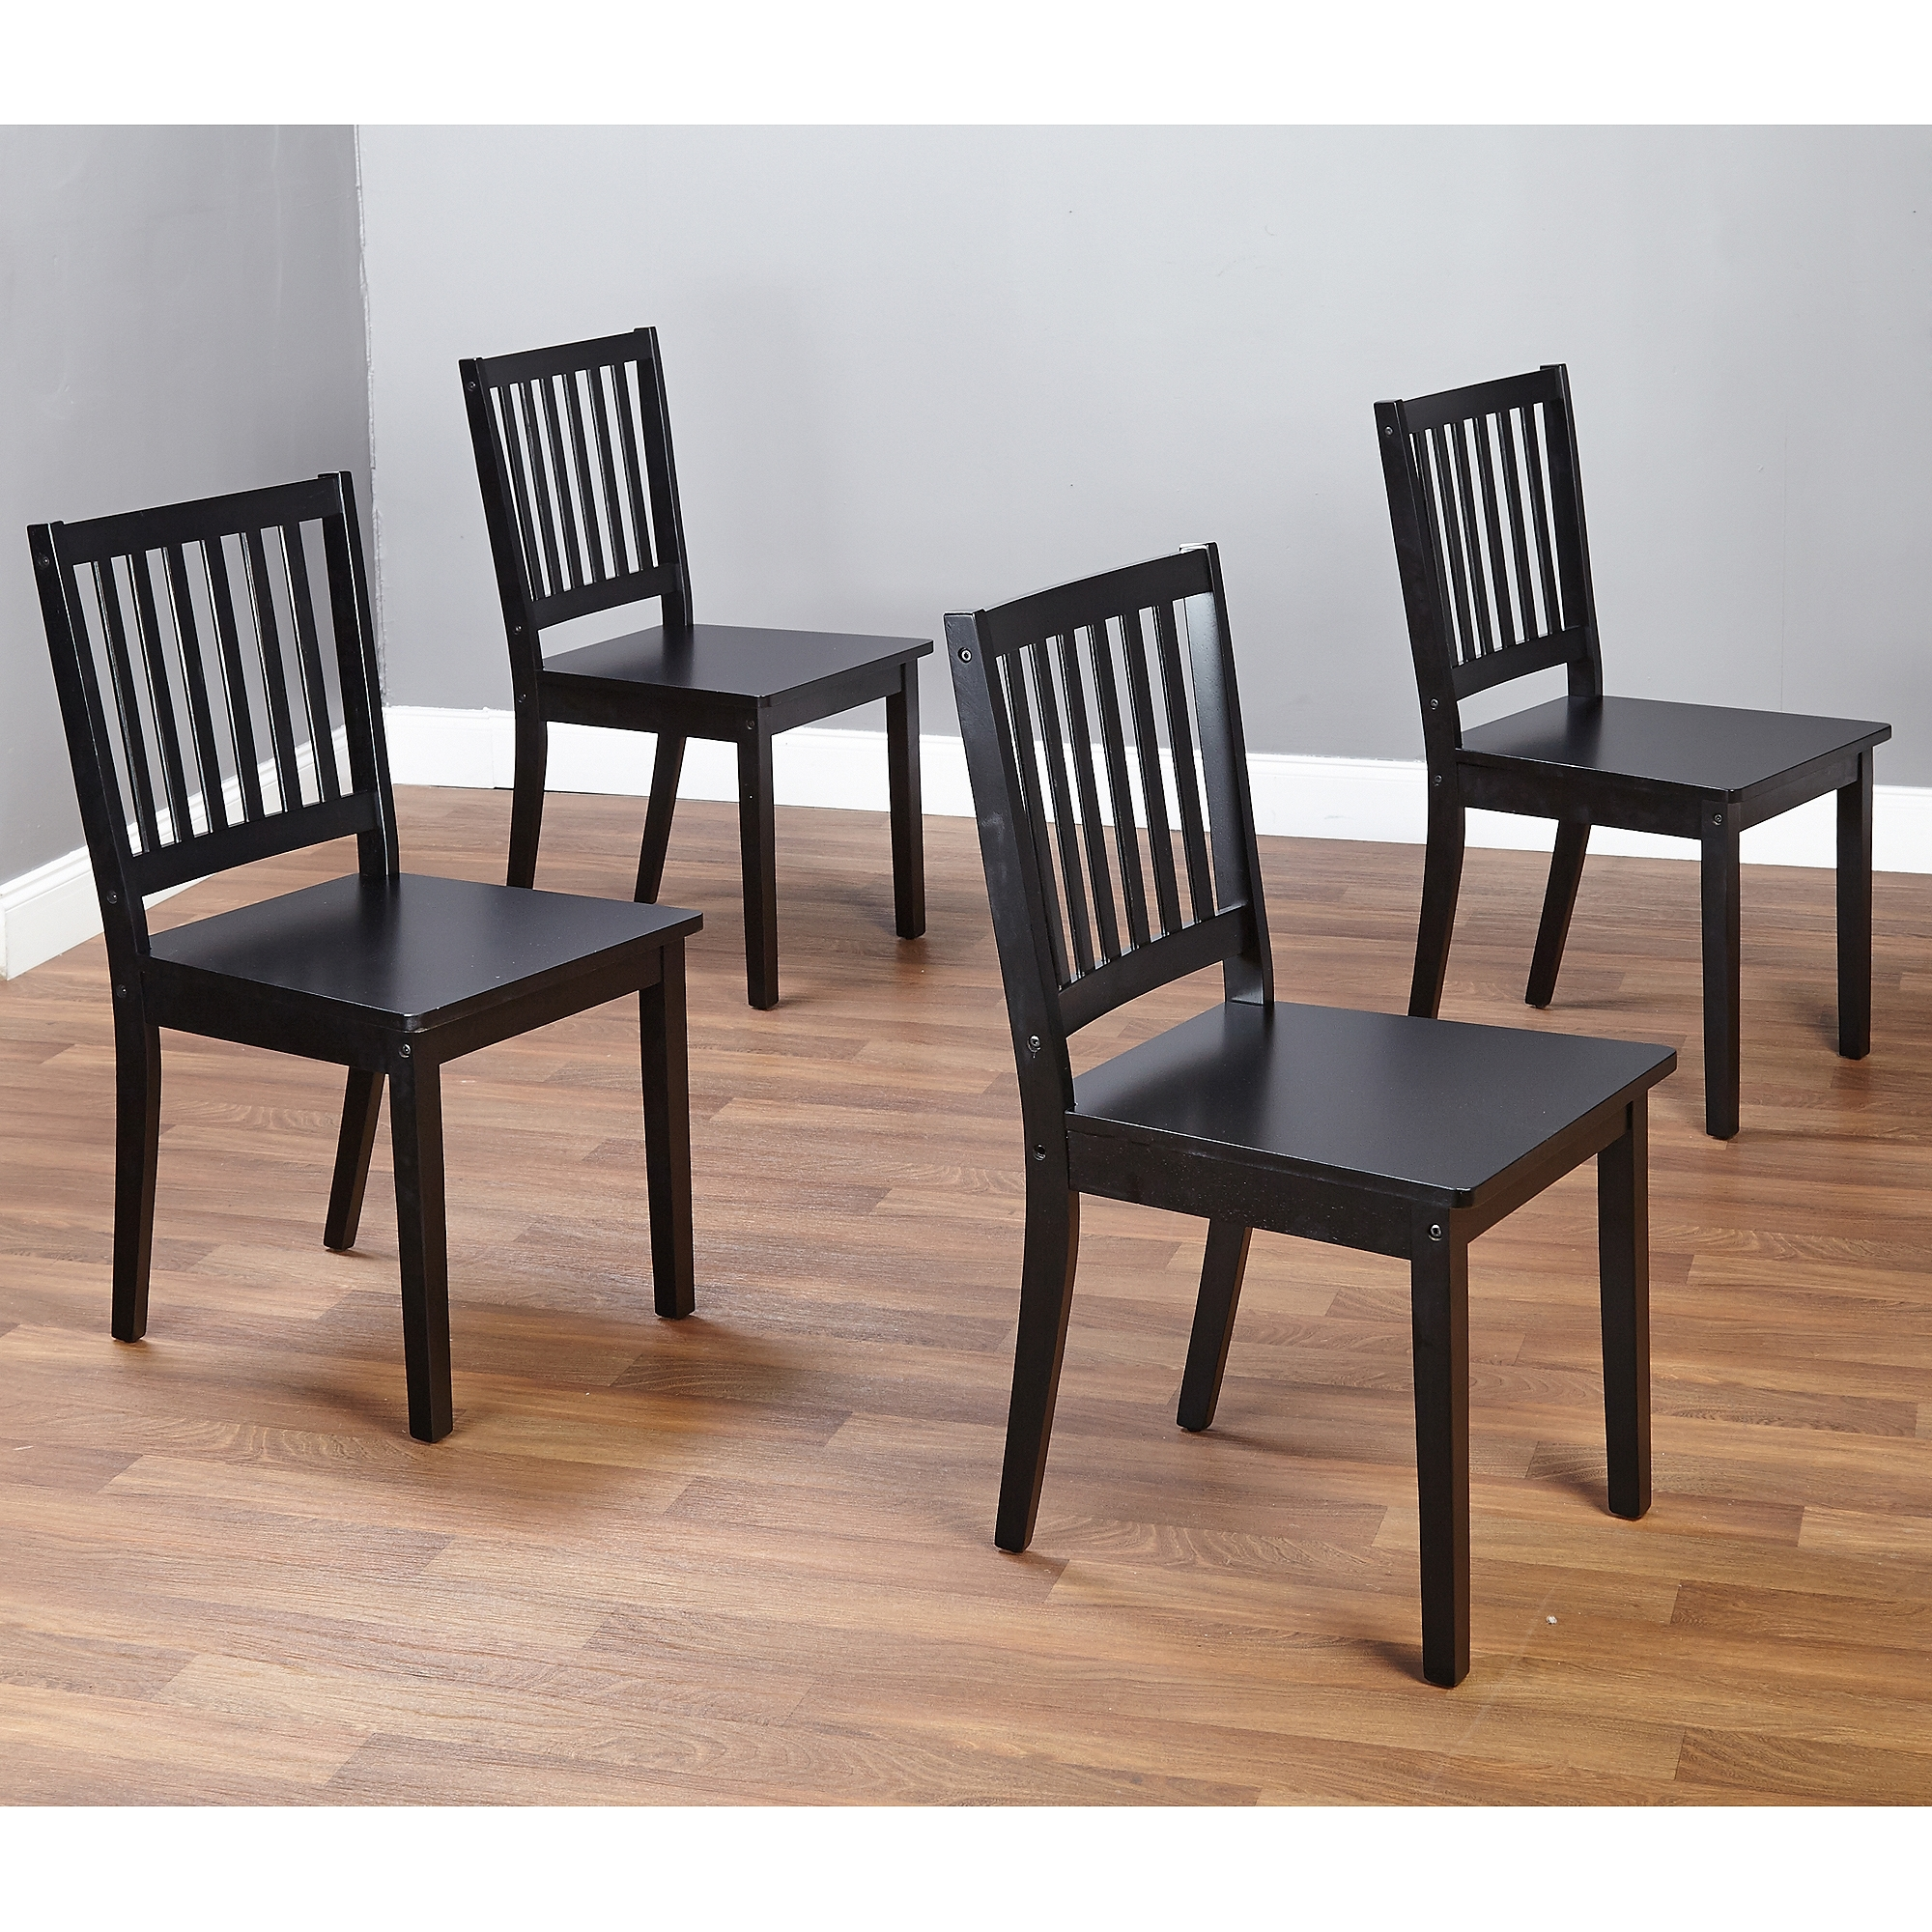 Shaker Dining Chairs Set Of 4 Black 24319100190 Ebay – Mebel Jepara Inside Newest Ebay Dining Chairs (View 6 of 25)